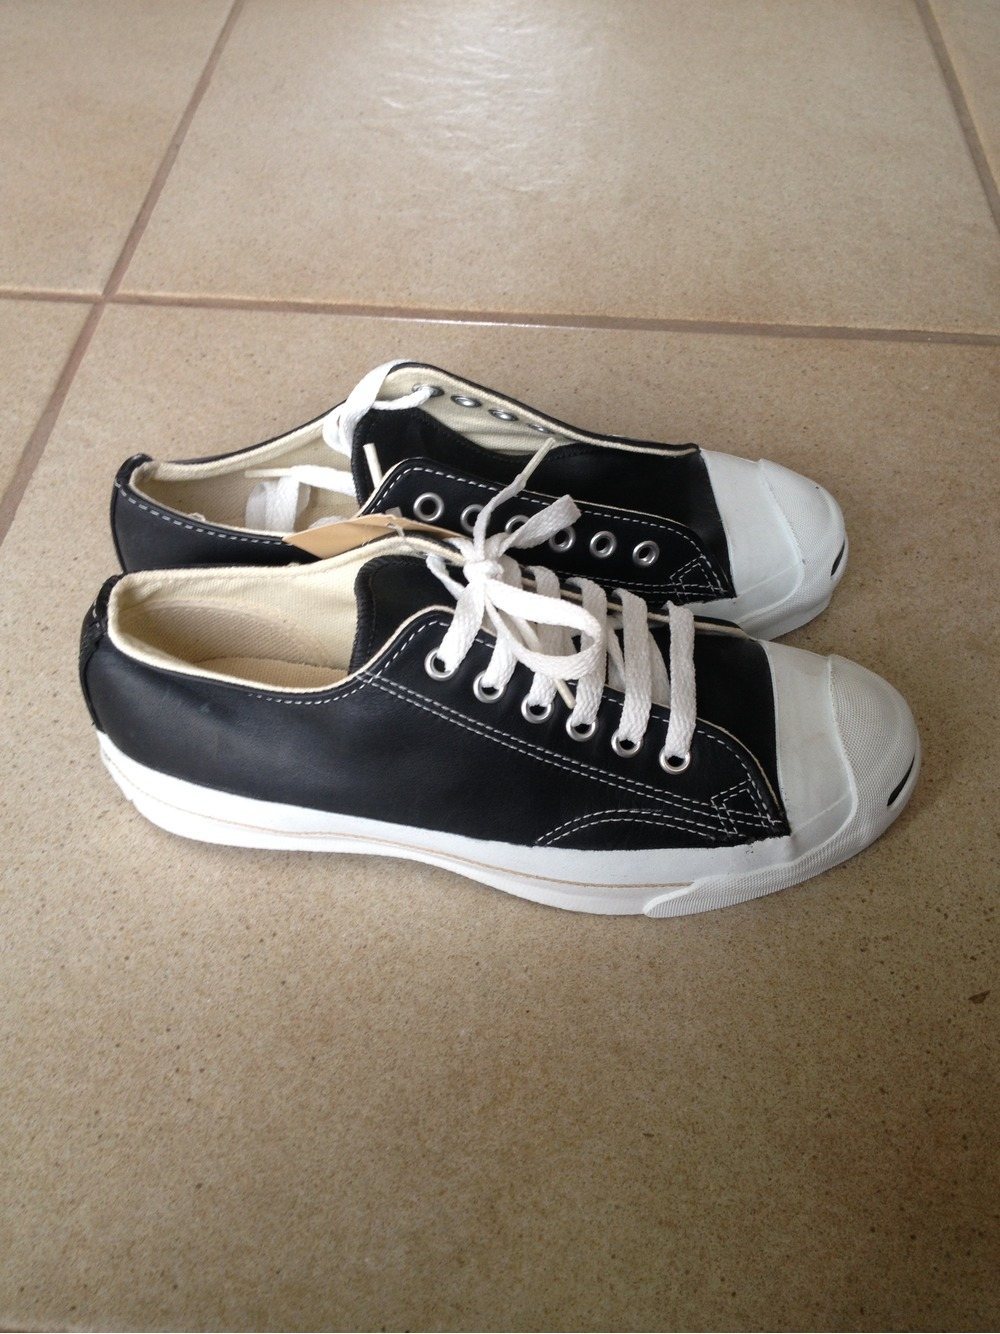 converse jack purcell usa 90